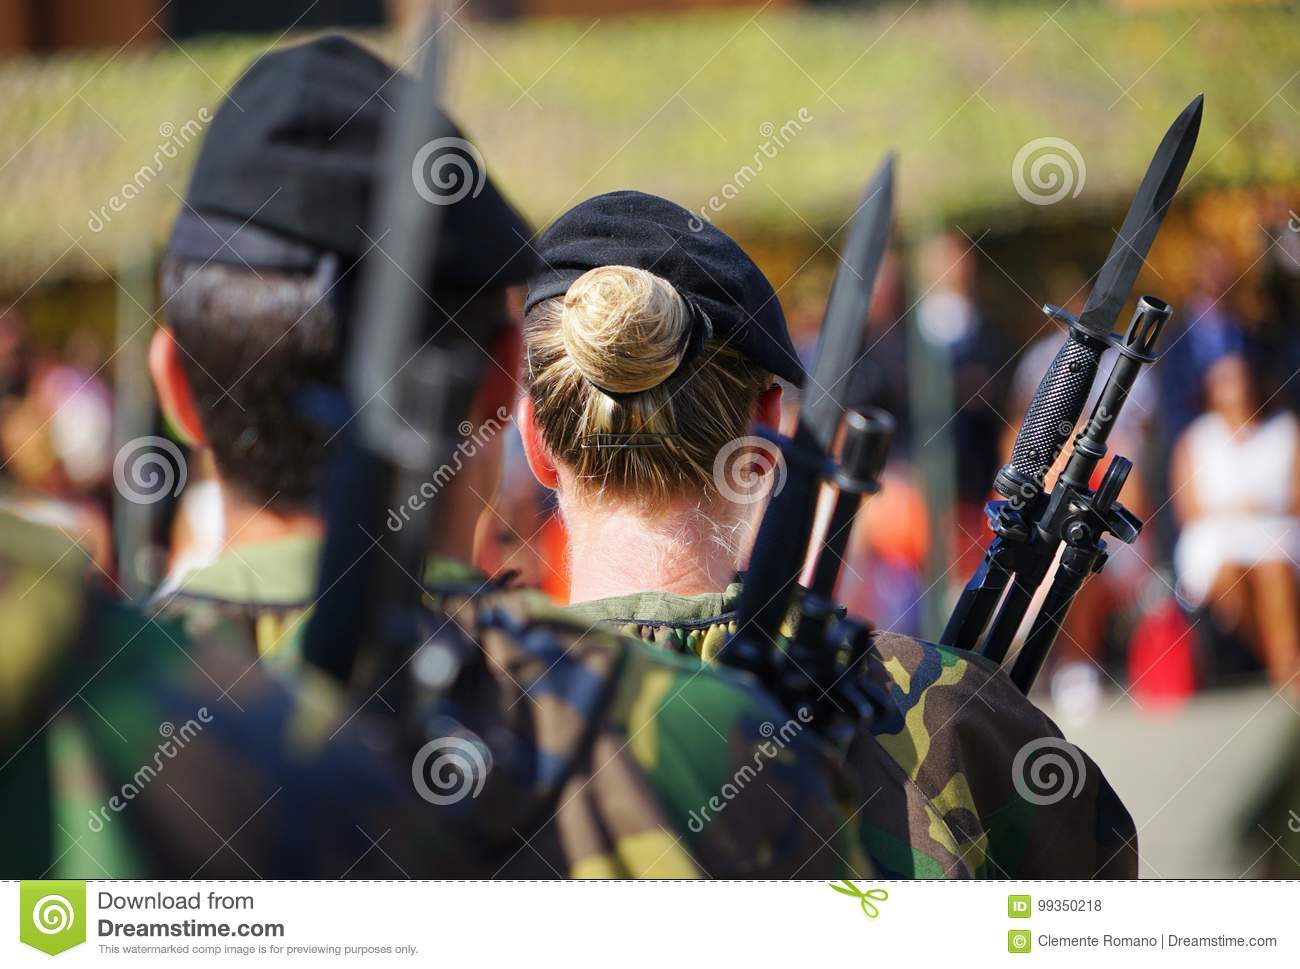 Women Soldiers Of The Italian Army Deployed In A Barracks